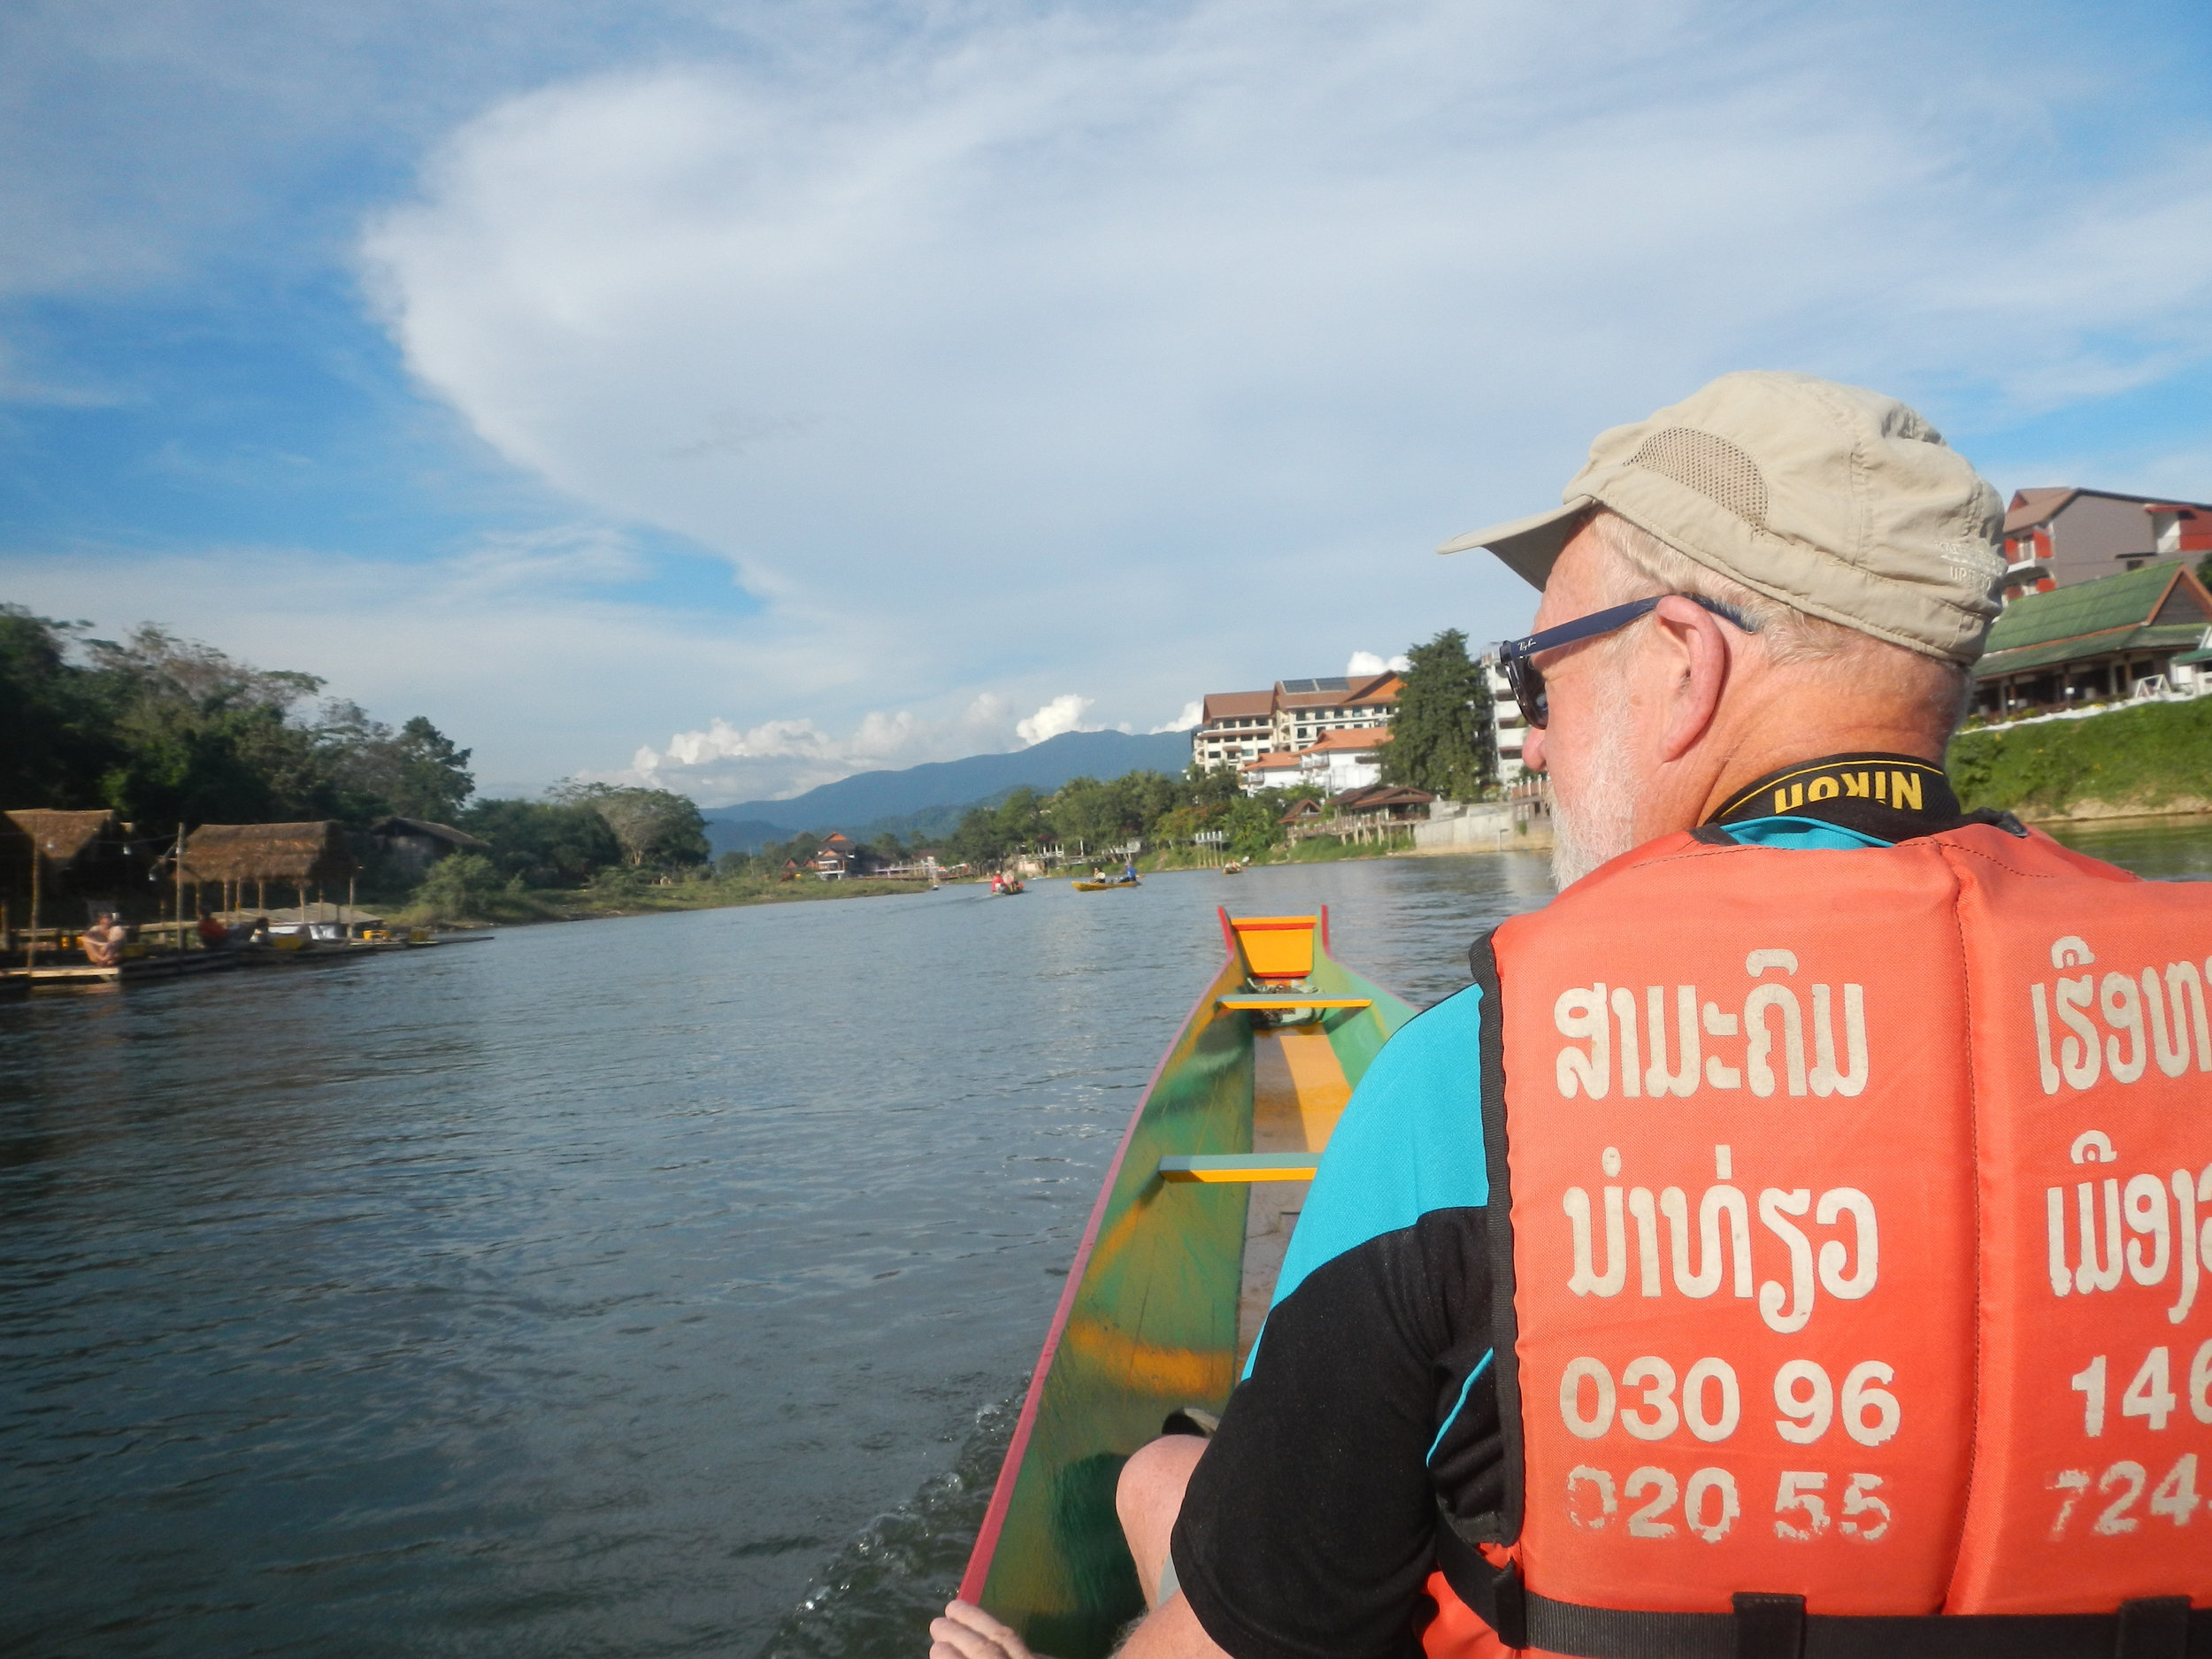 River cruise, Vang Vieng, Laos, 29 Nov 2017.jpg